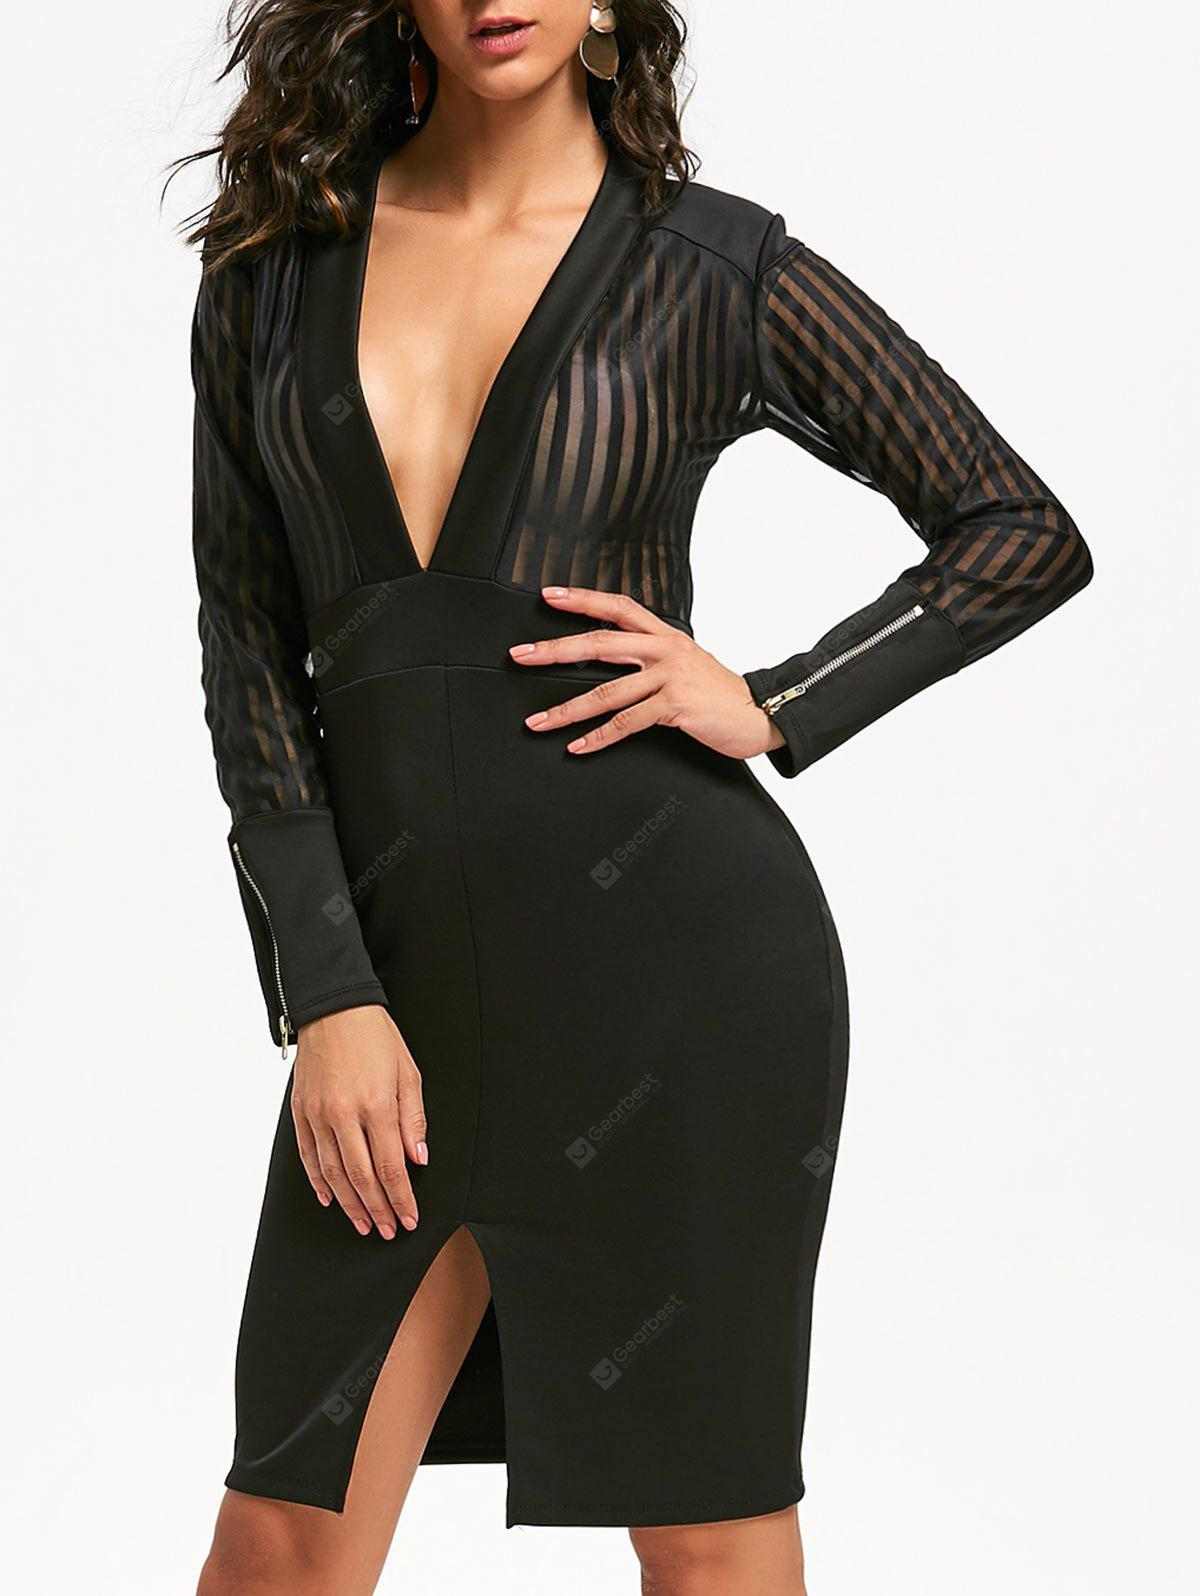 Sheer Plunging Neck Slit Bodycon Dress